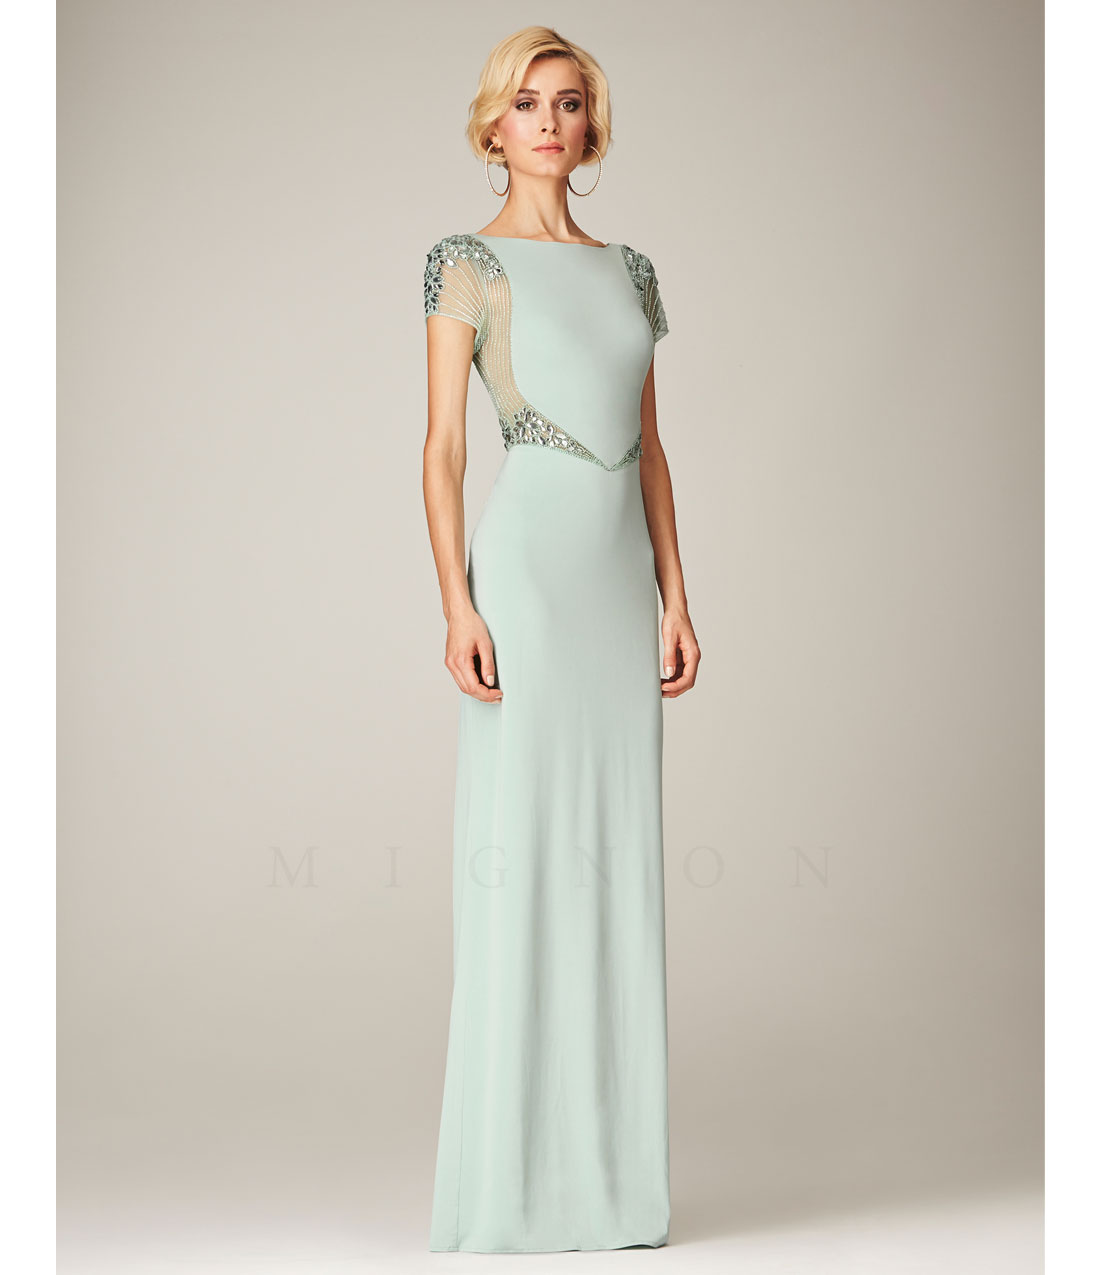 Mignon Spring 2014 Dresses Mint Bateau Beaded Cap Sleeve